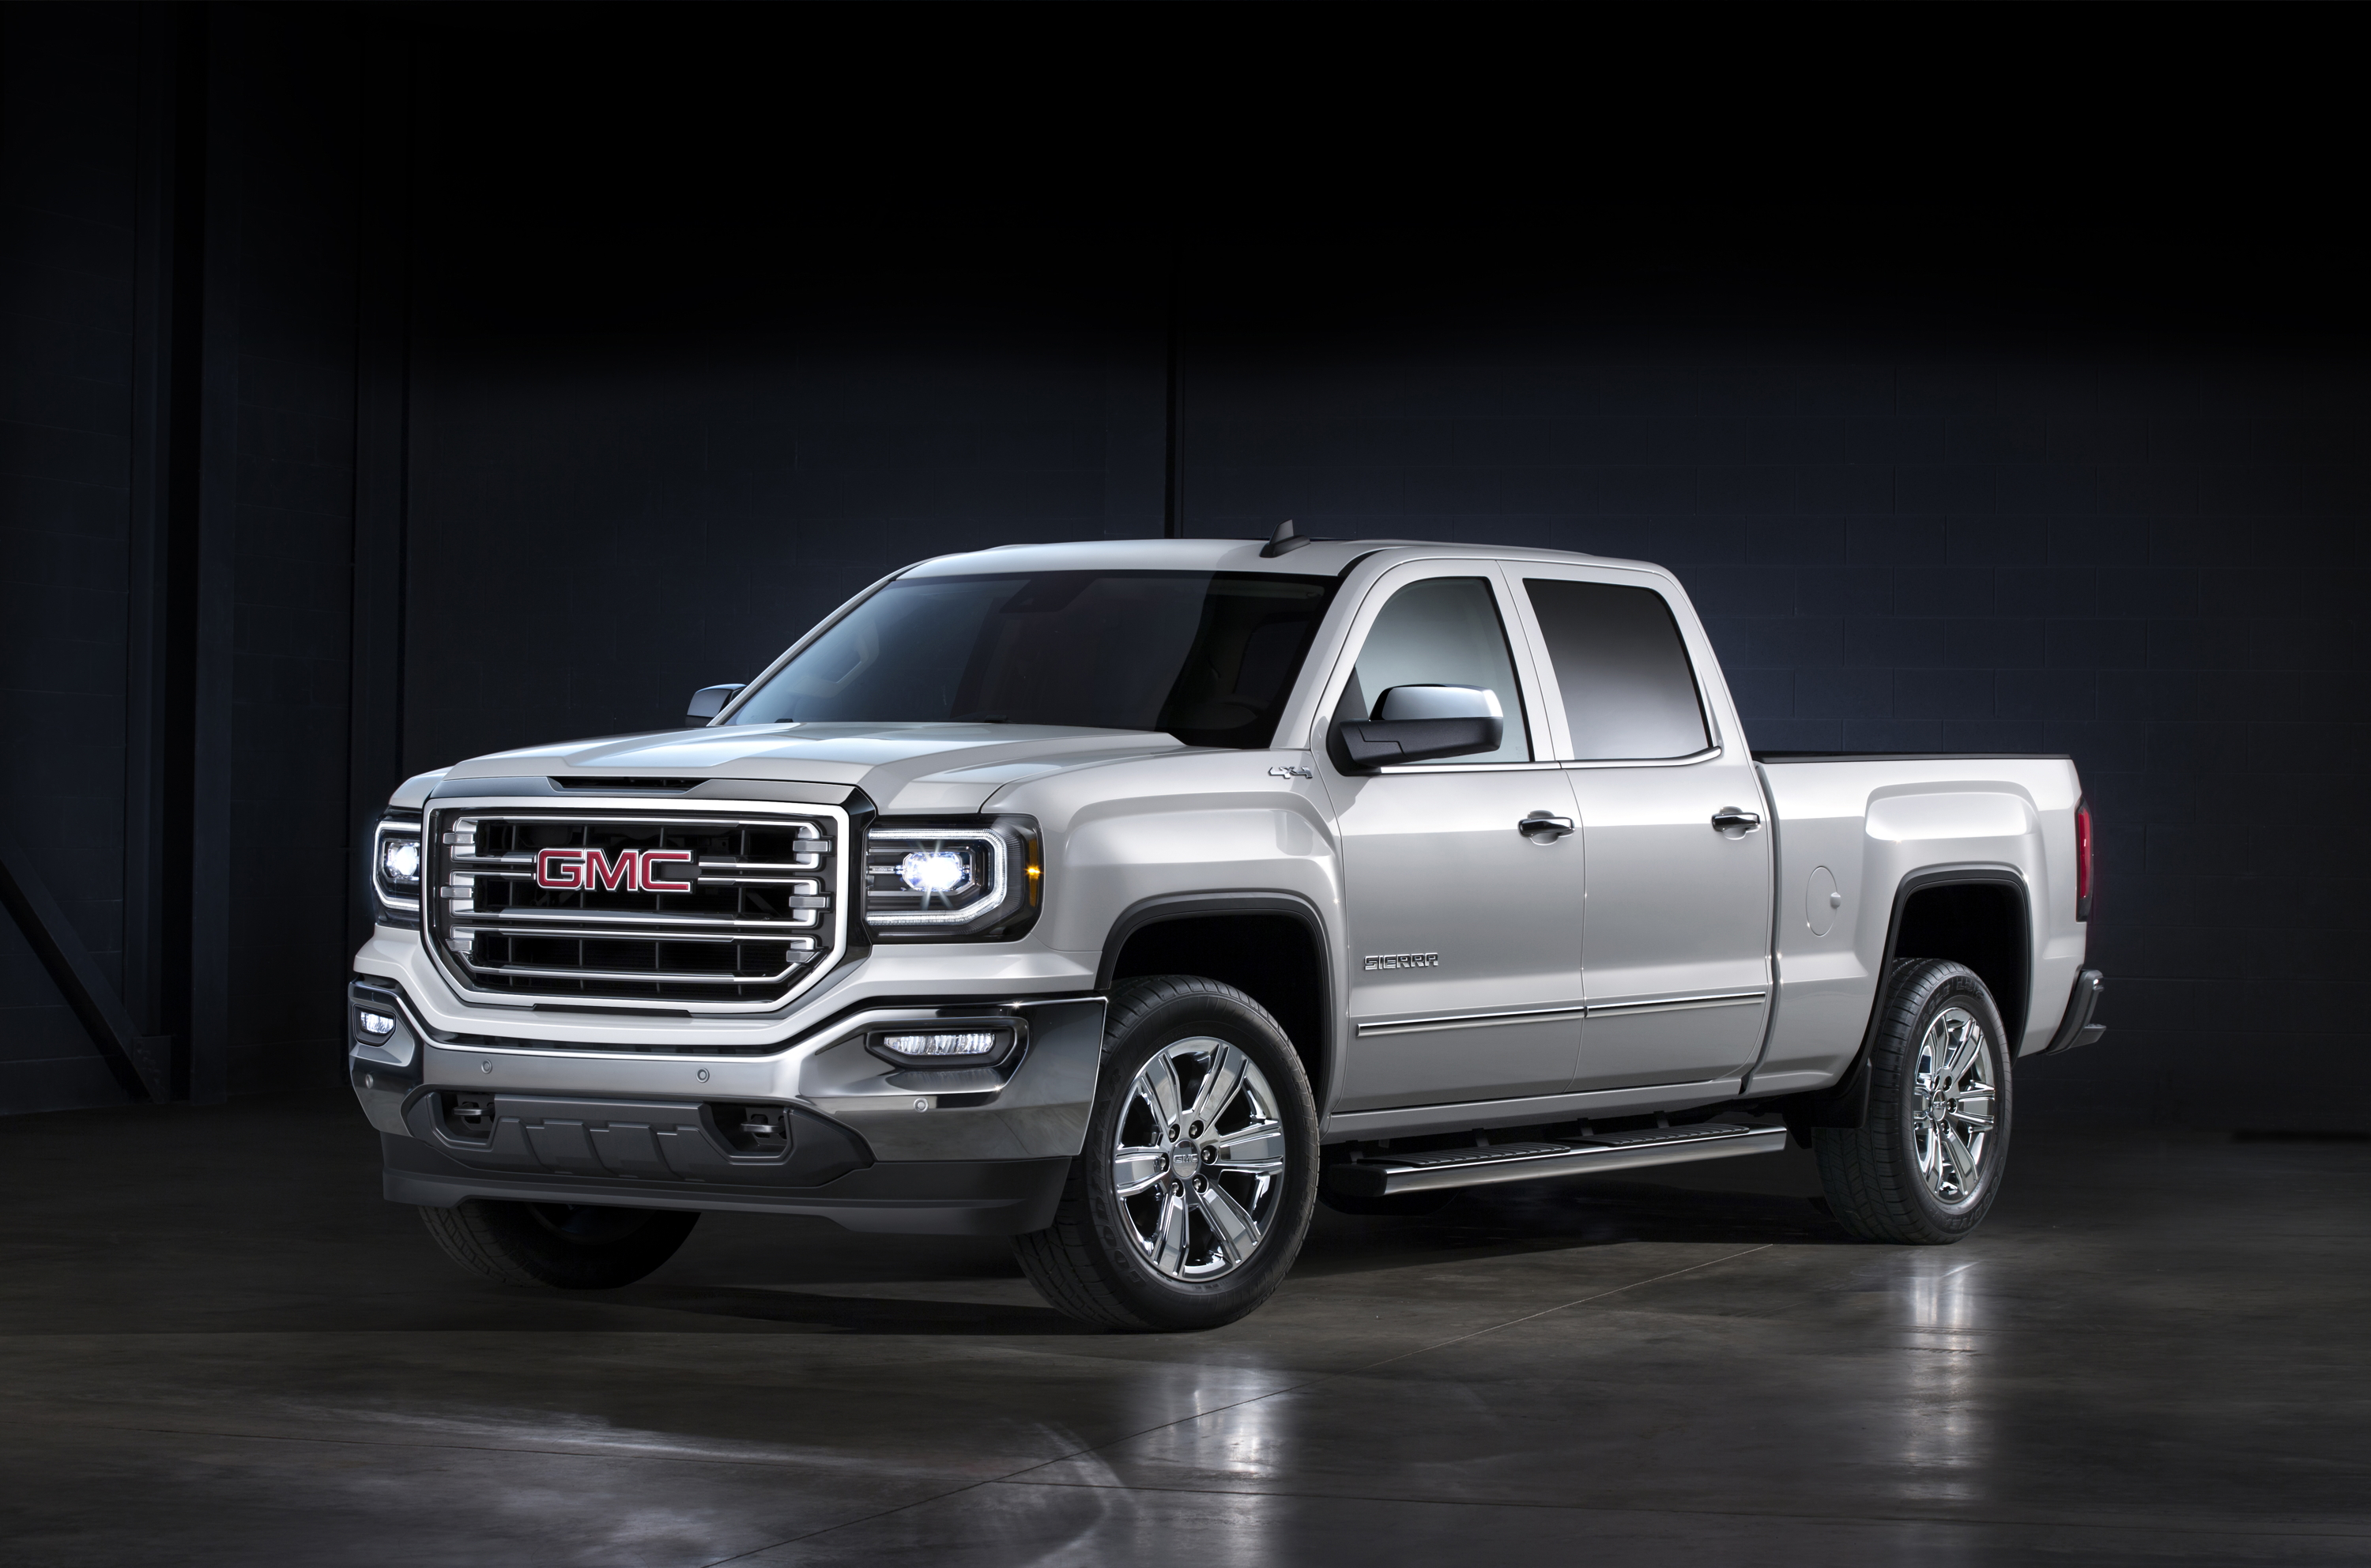 29022017 The 2017 GMC Sierra Offers Enhanced Tech and Safety Features